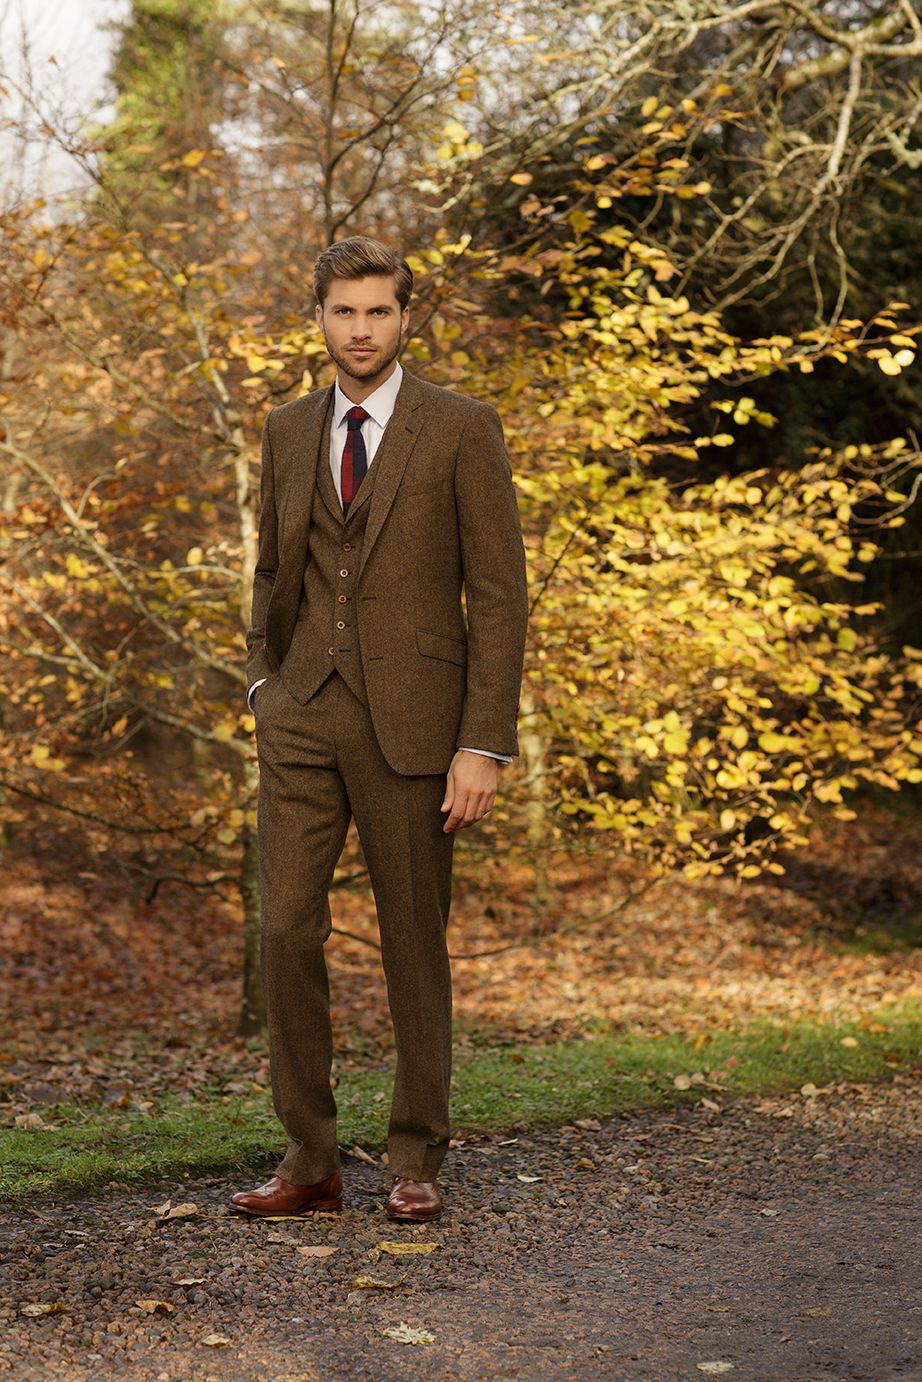 3 piece Magee tweed suits to hire or buy from £200 | Wedding Ideas ...